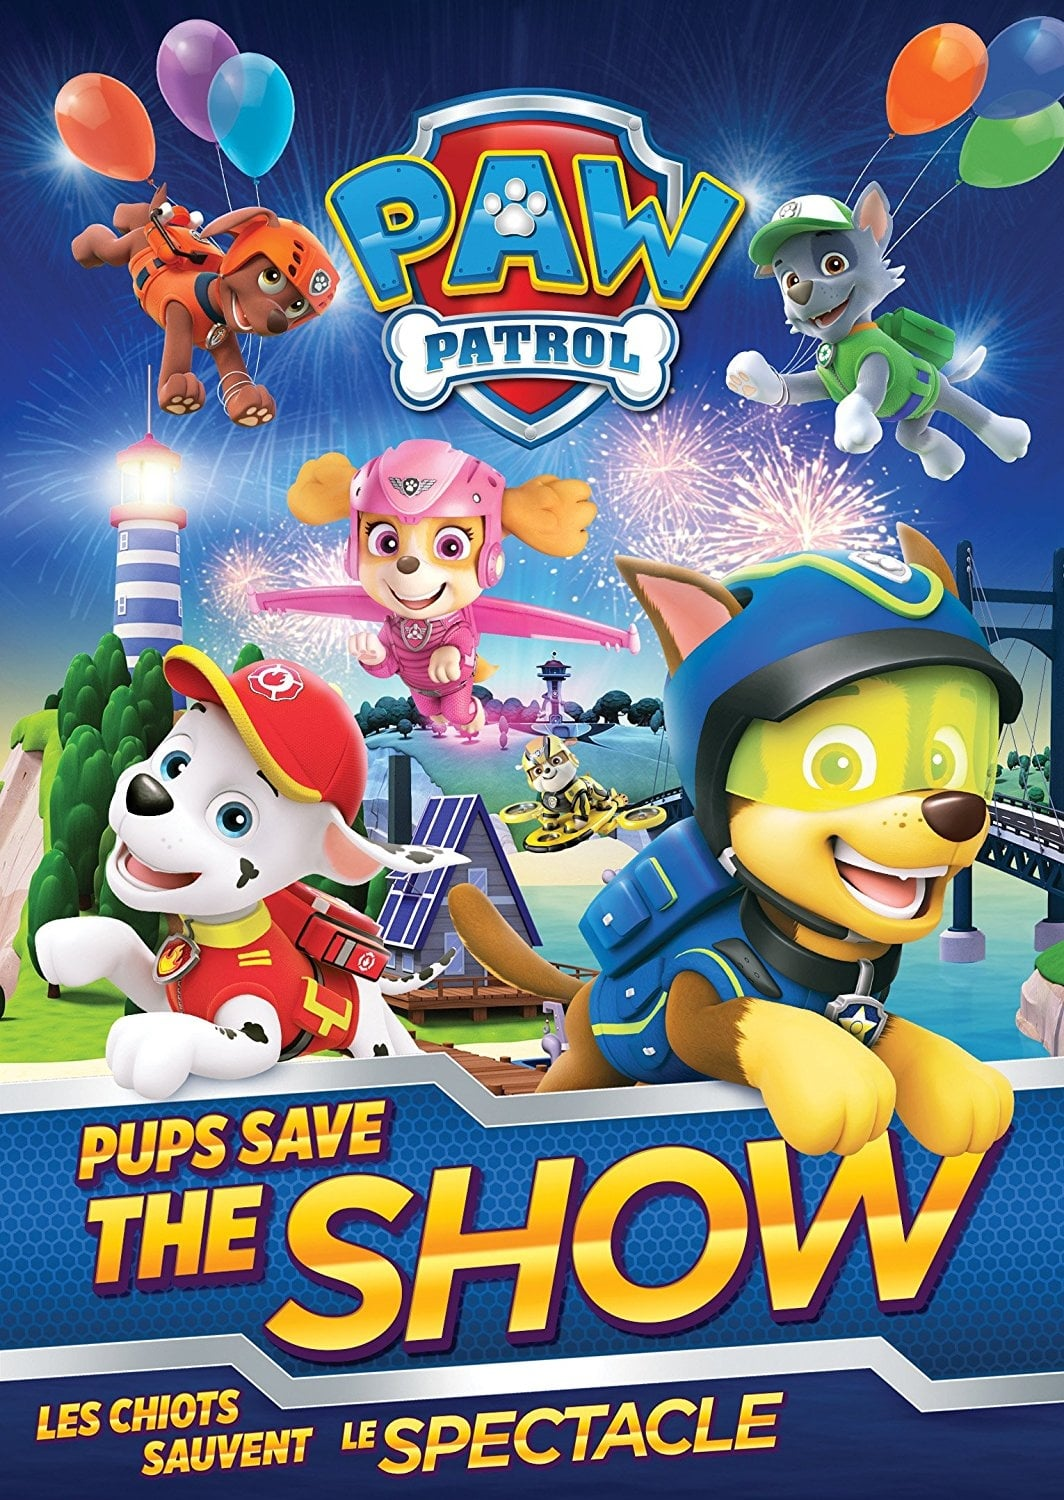 Paw Patrol - Pups Save the Show